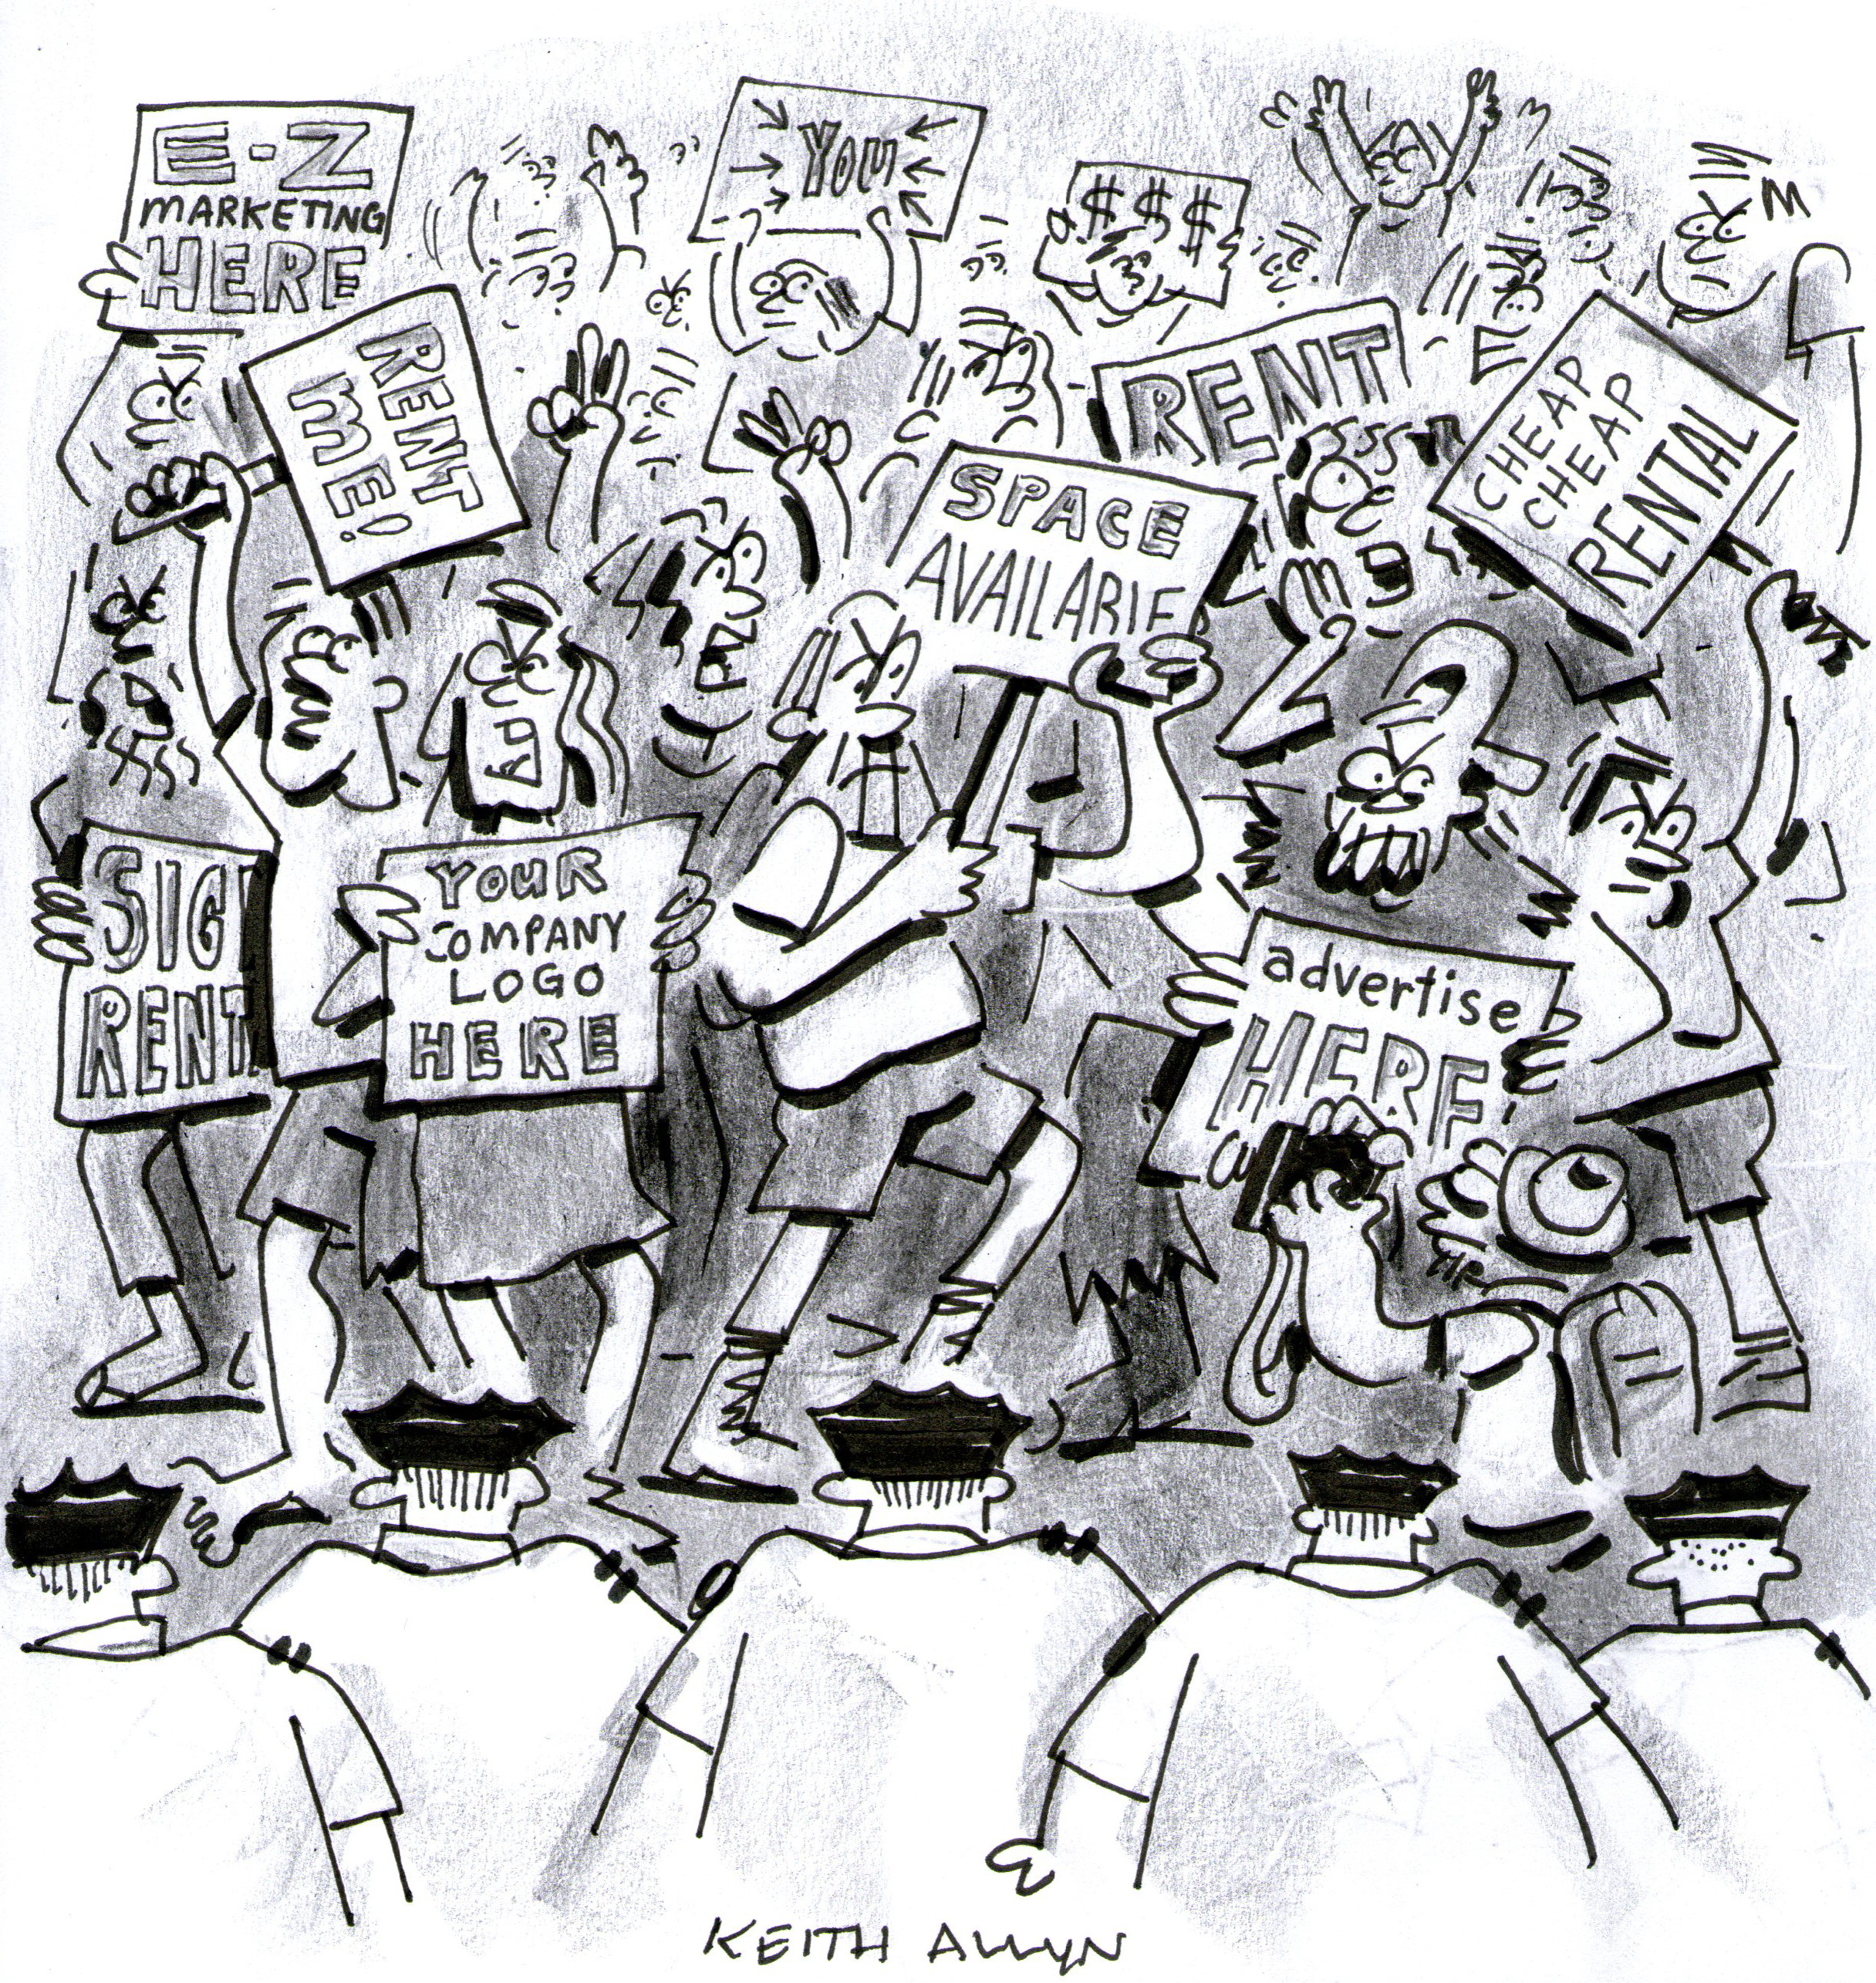 occupy wall street cartoon, protest art, advertise here, your company logo here, space available cartoon, keithallyn